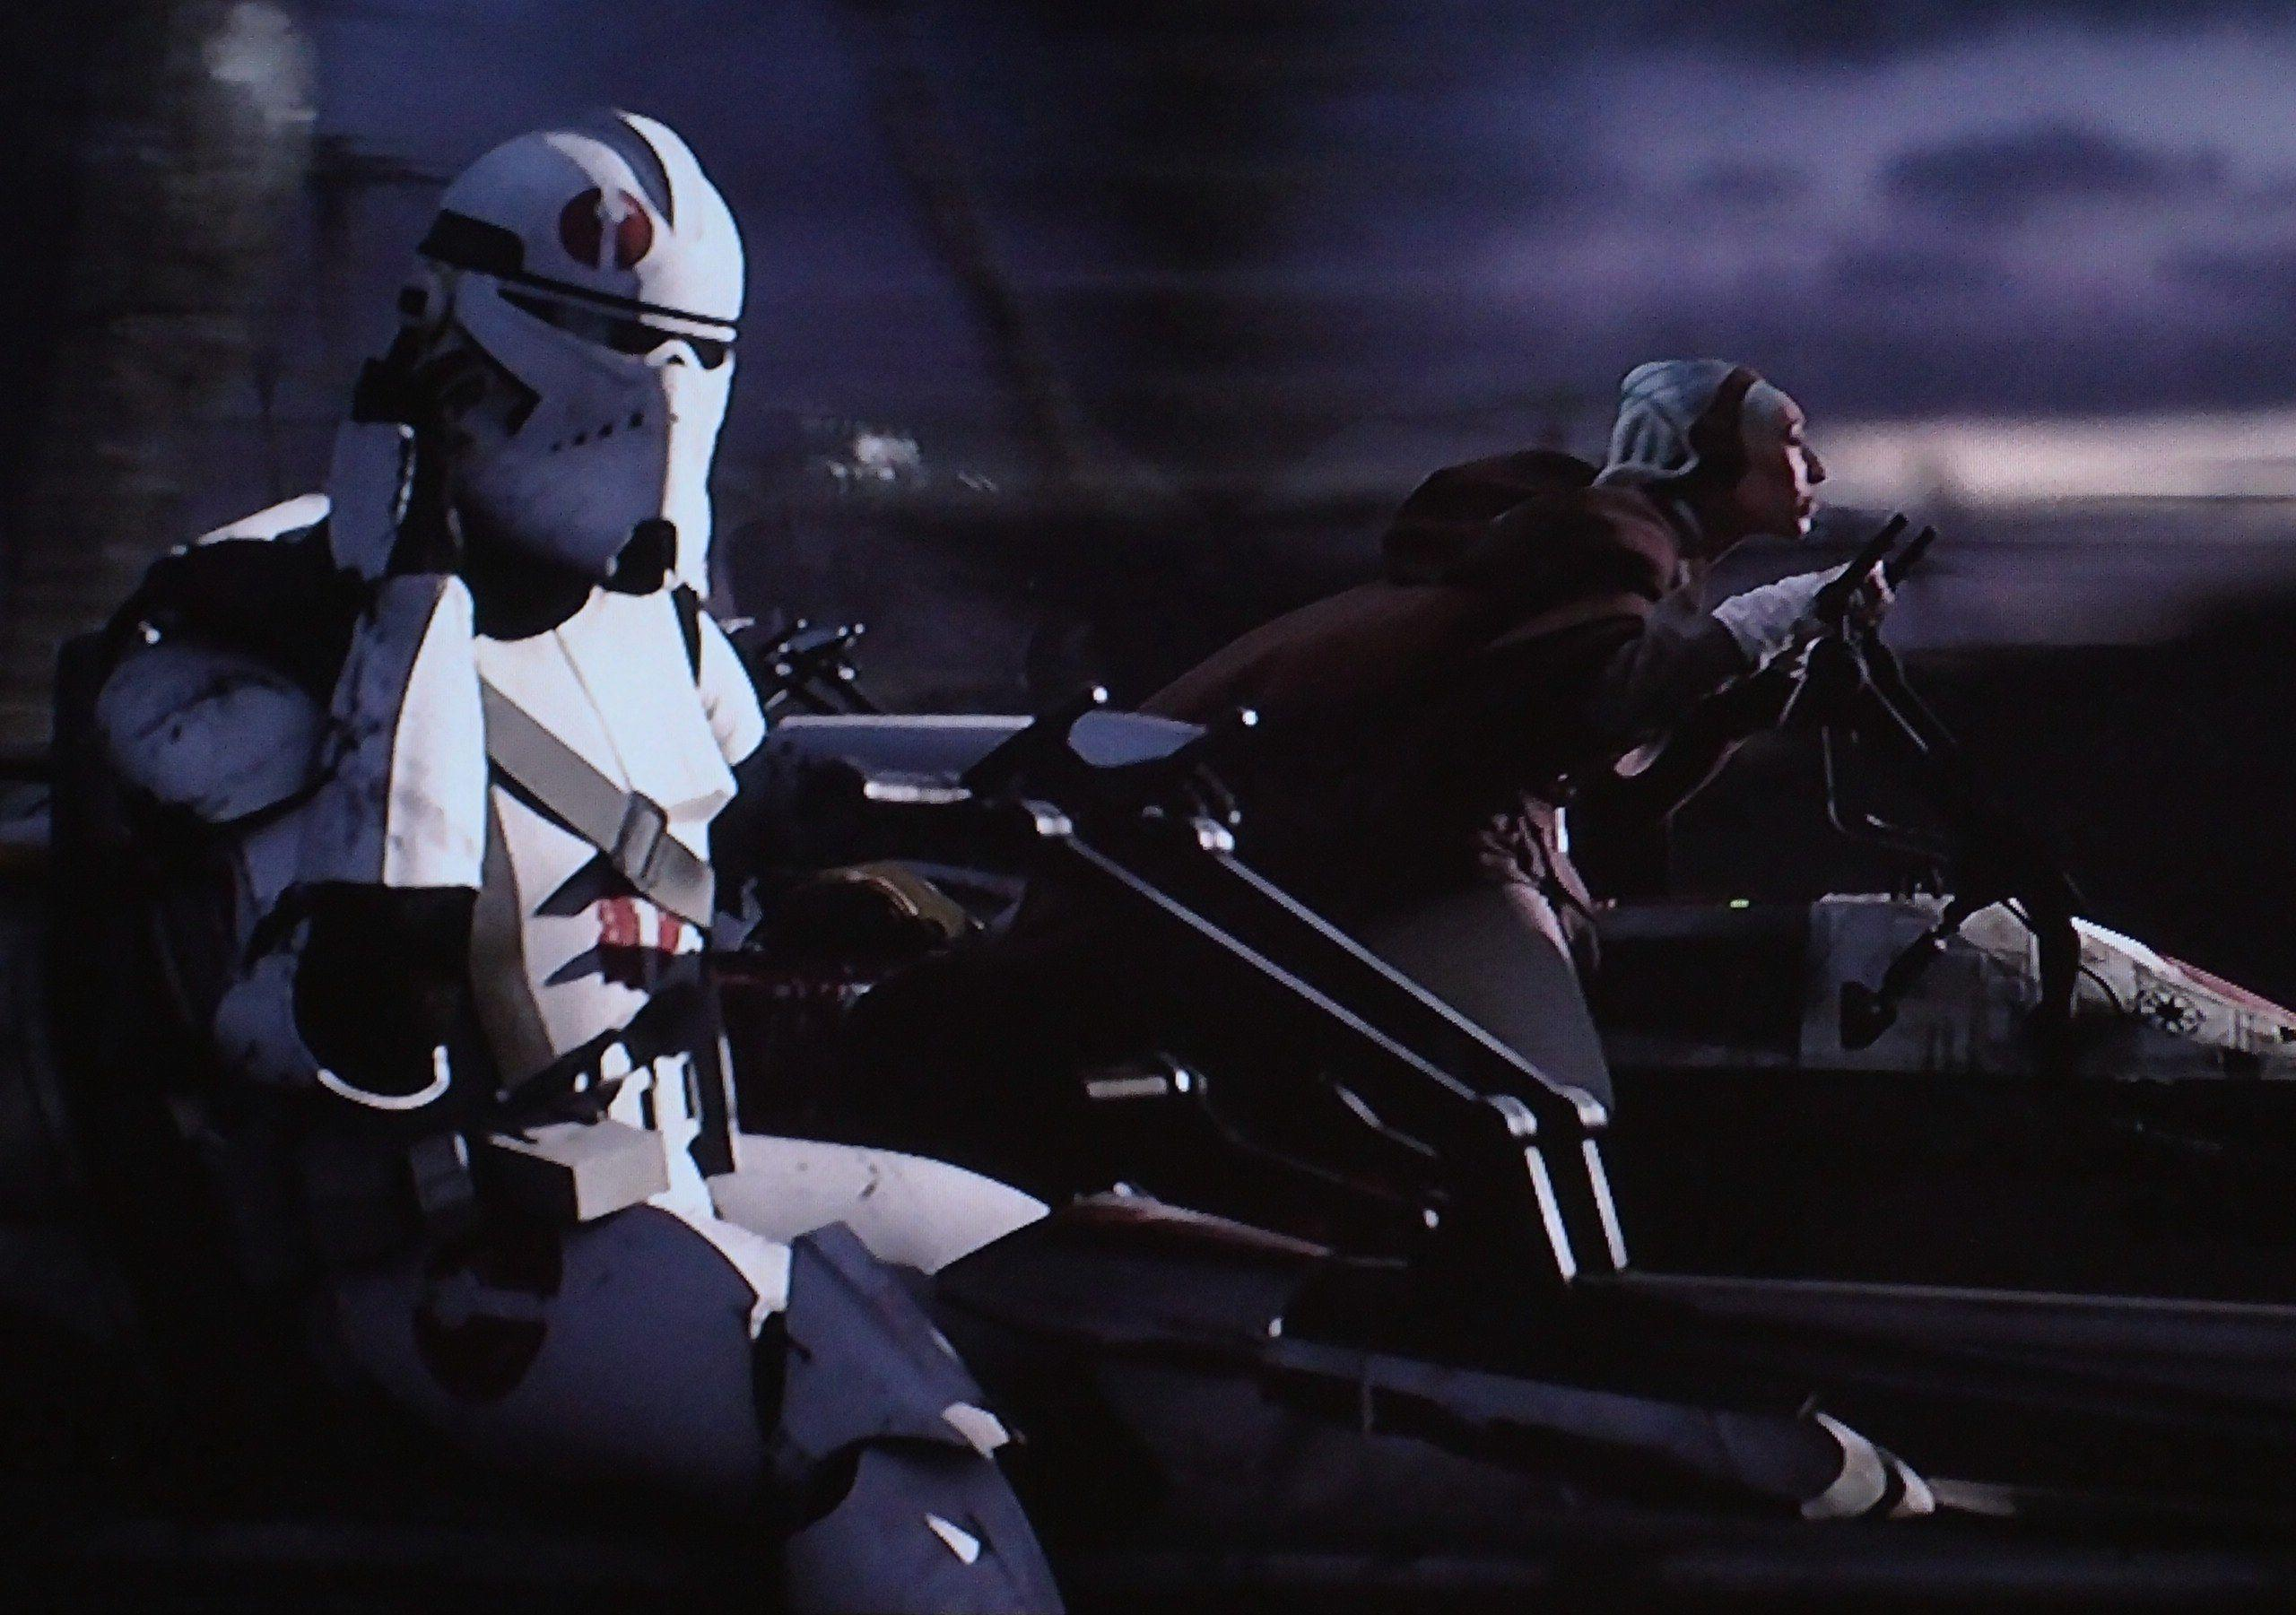 Star Wars Clone Trooper Wallpapers